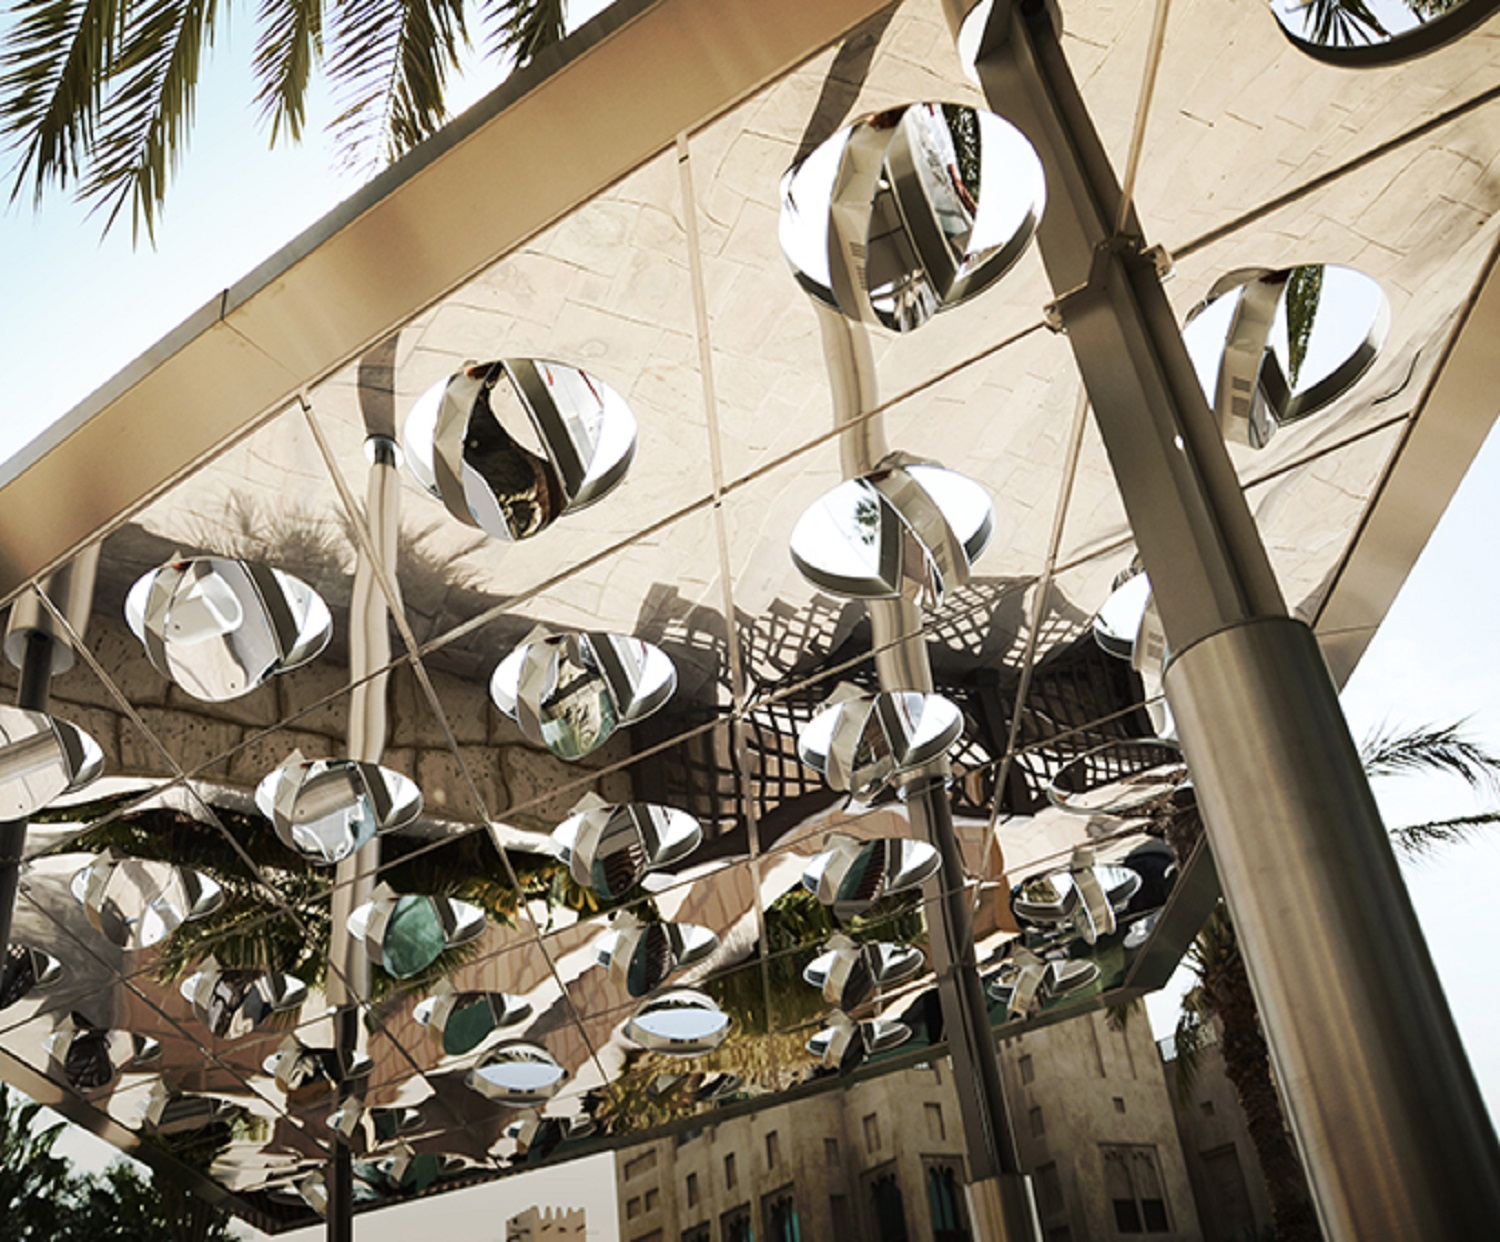 carlo-ratti-sun-and-shade-dubai-c